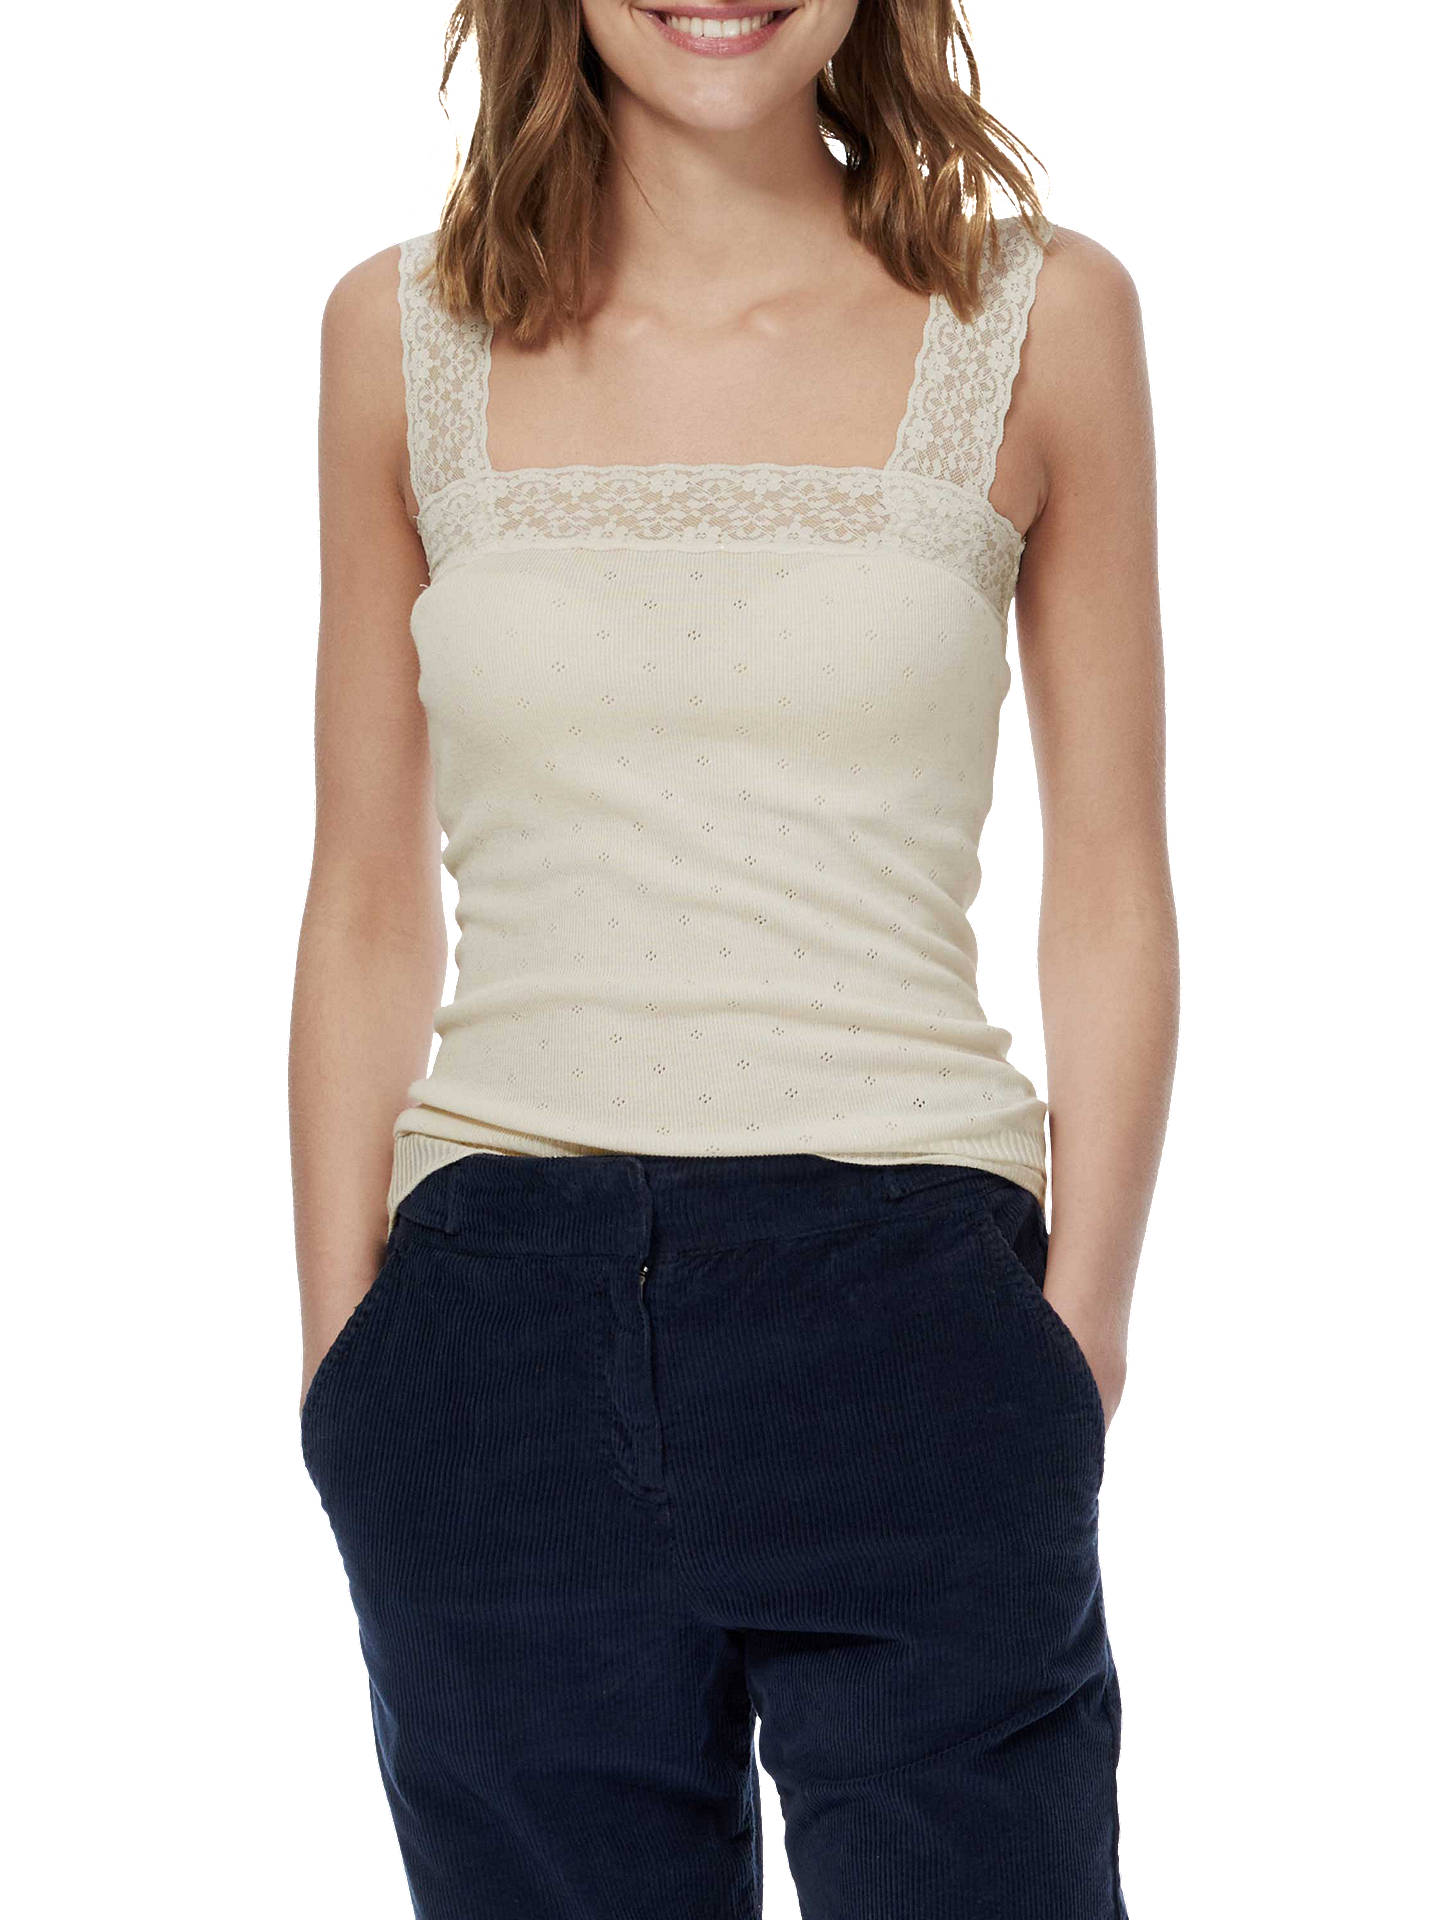 BuyBrora Lace Trim Cami, Cream, 8-10 Online at johnlewis.com